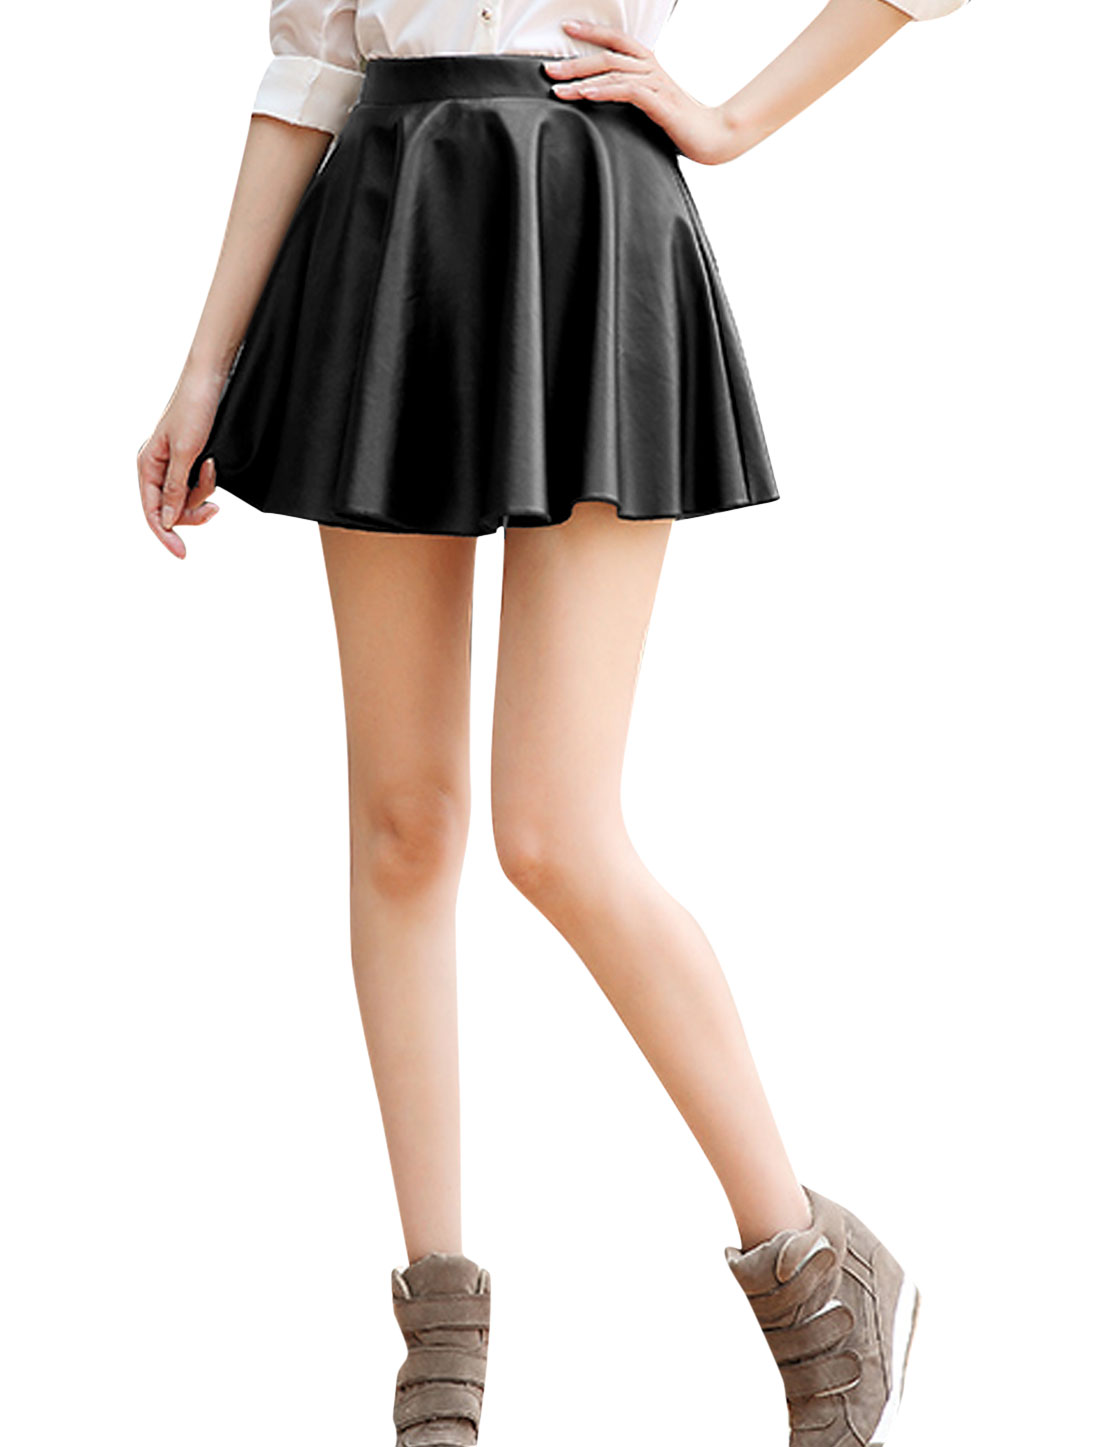 Lady Hidden Zipper Side Imitation Leather Casual Full Skirt Black M